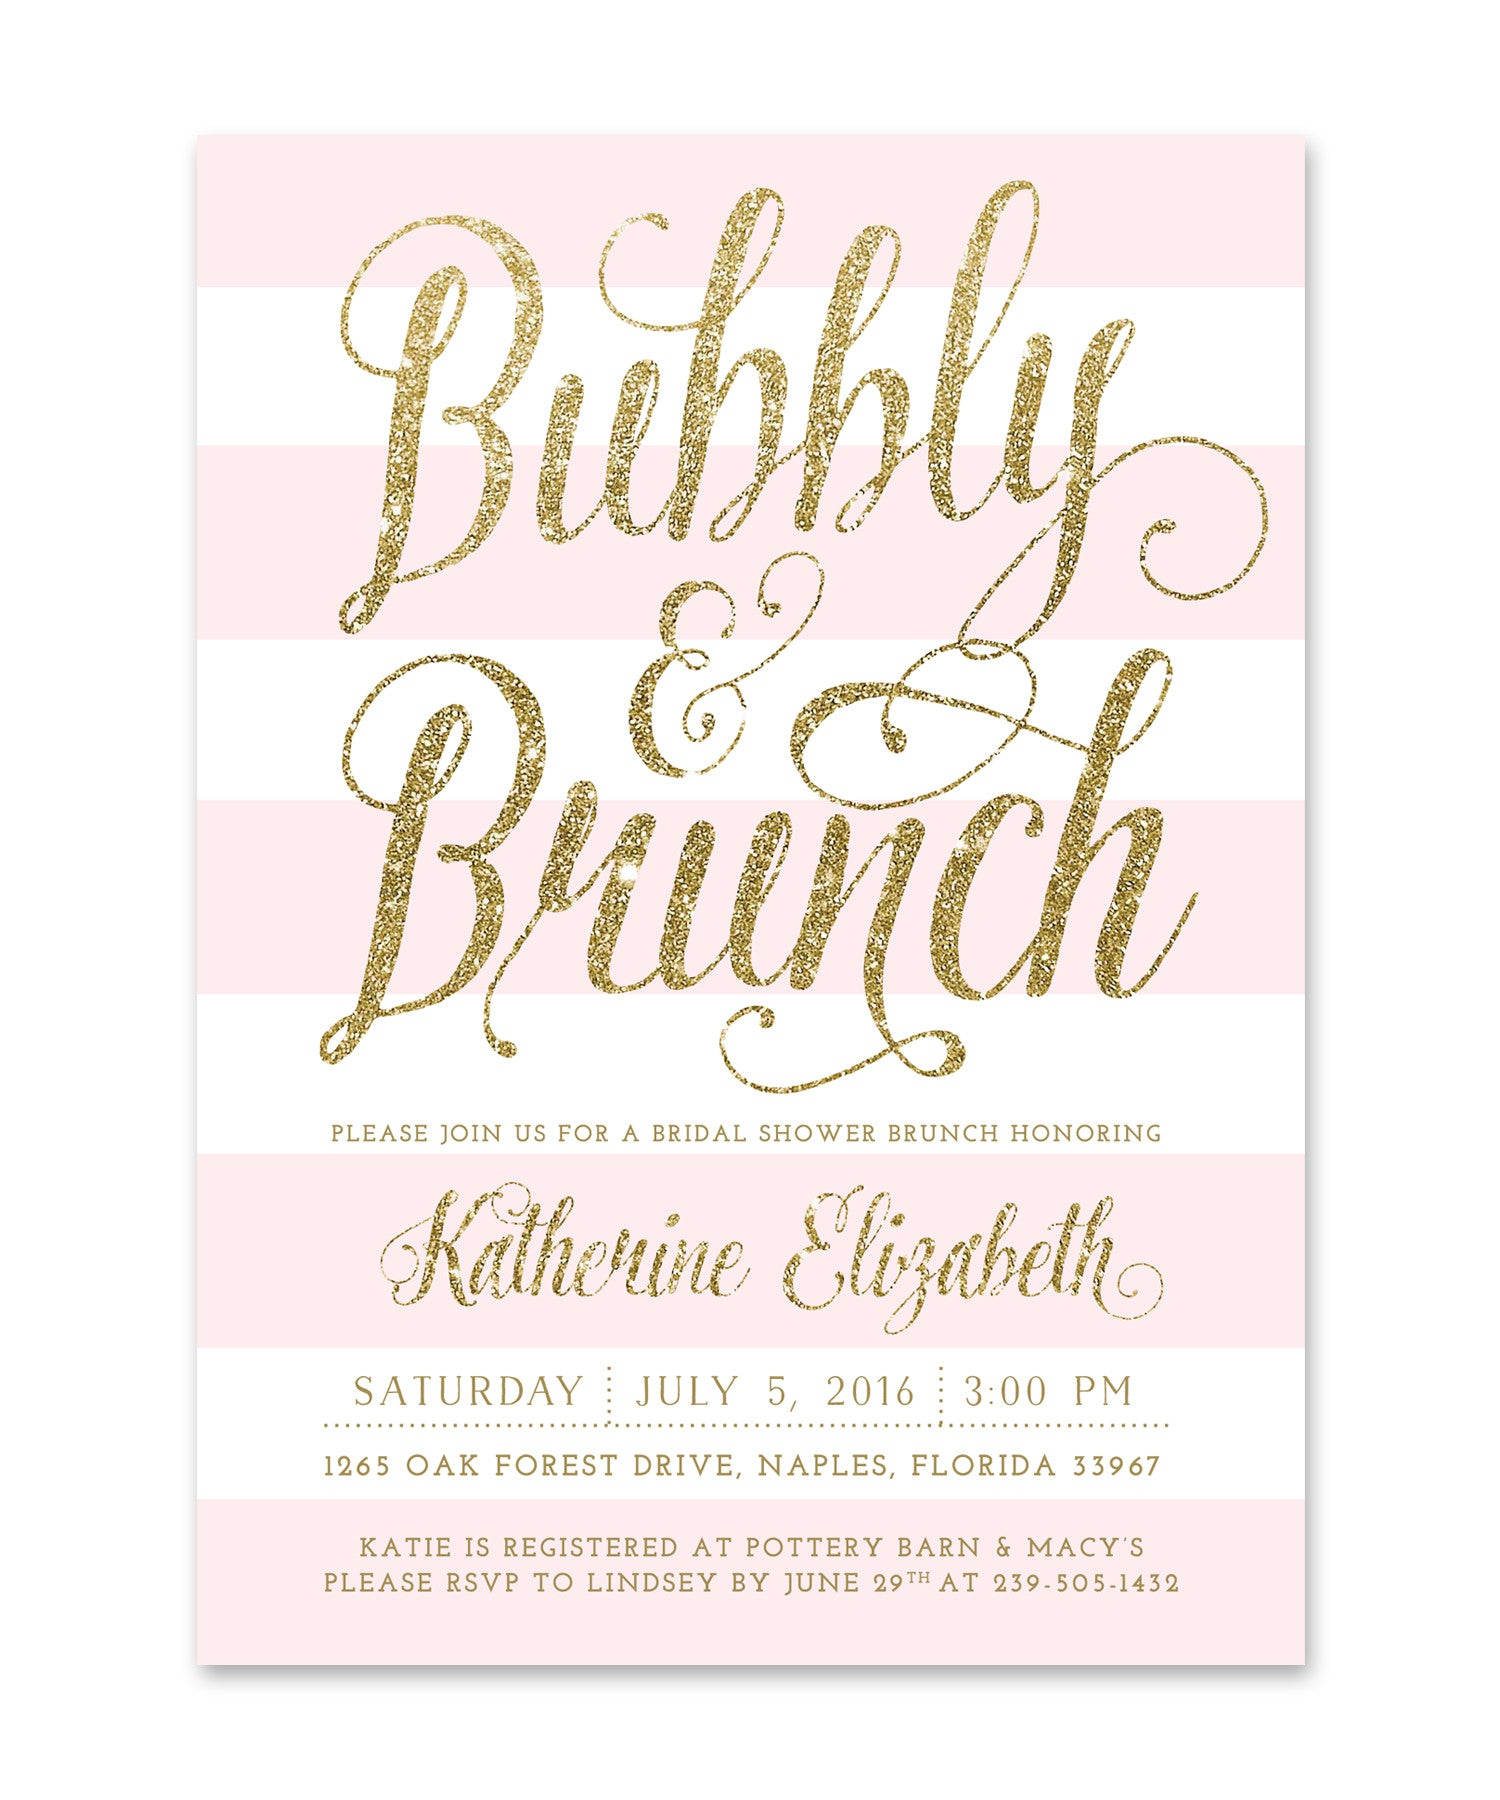 Ava Bubbly Brunch Bridal Shower Invitation Pink White Stripes